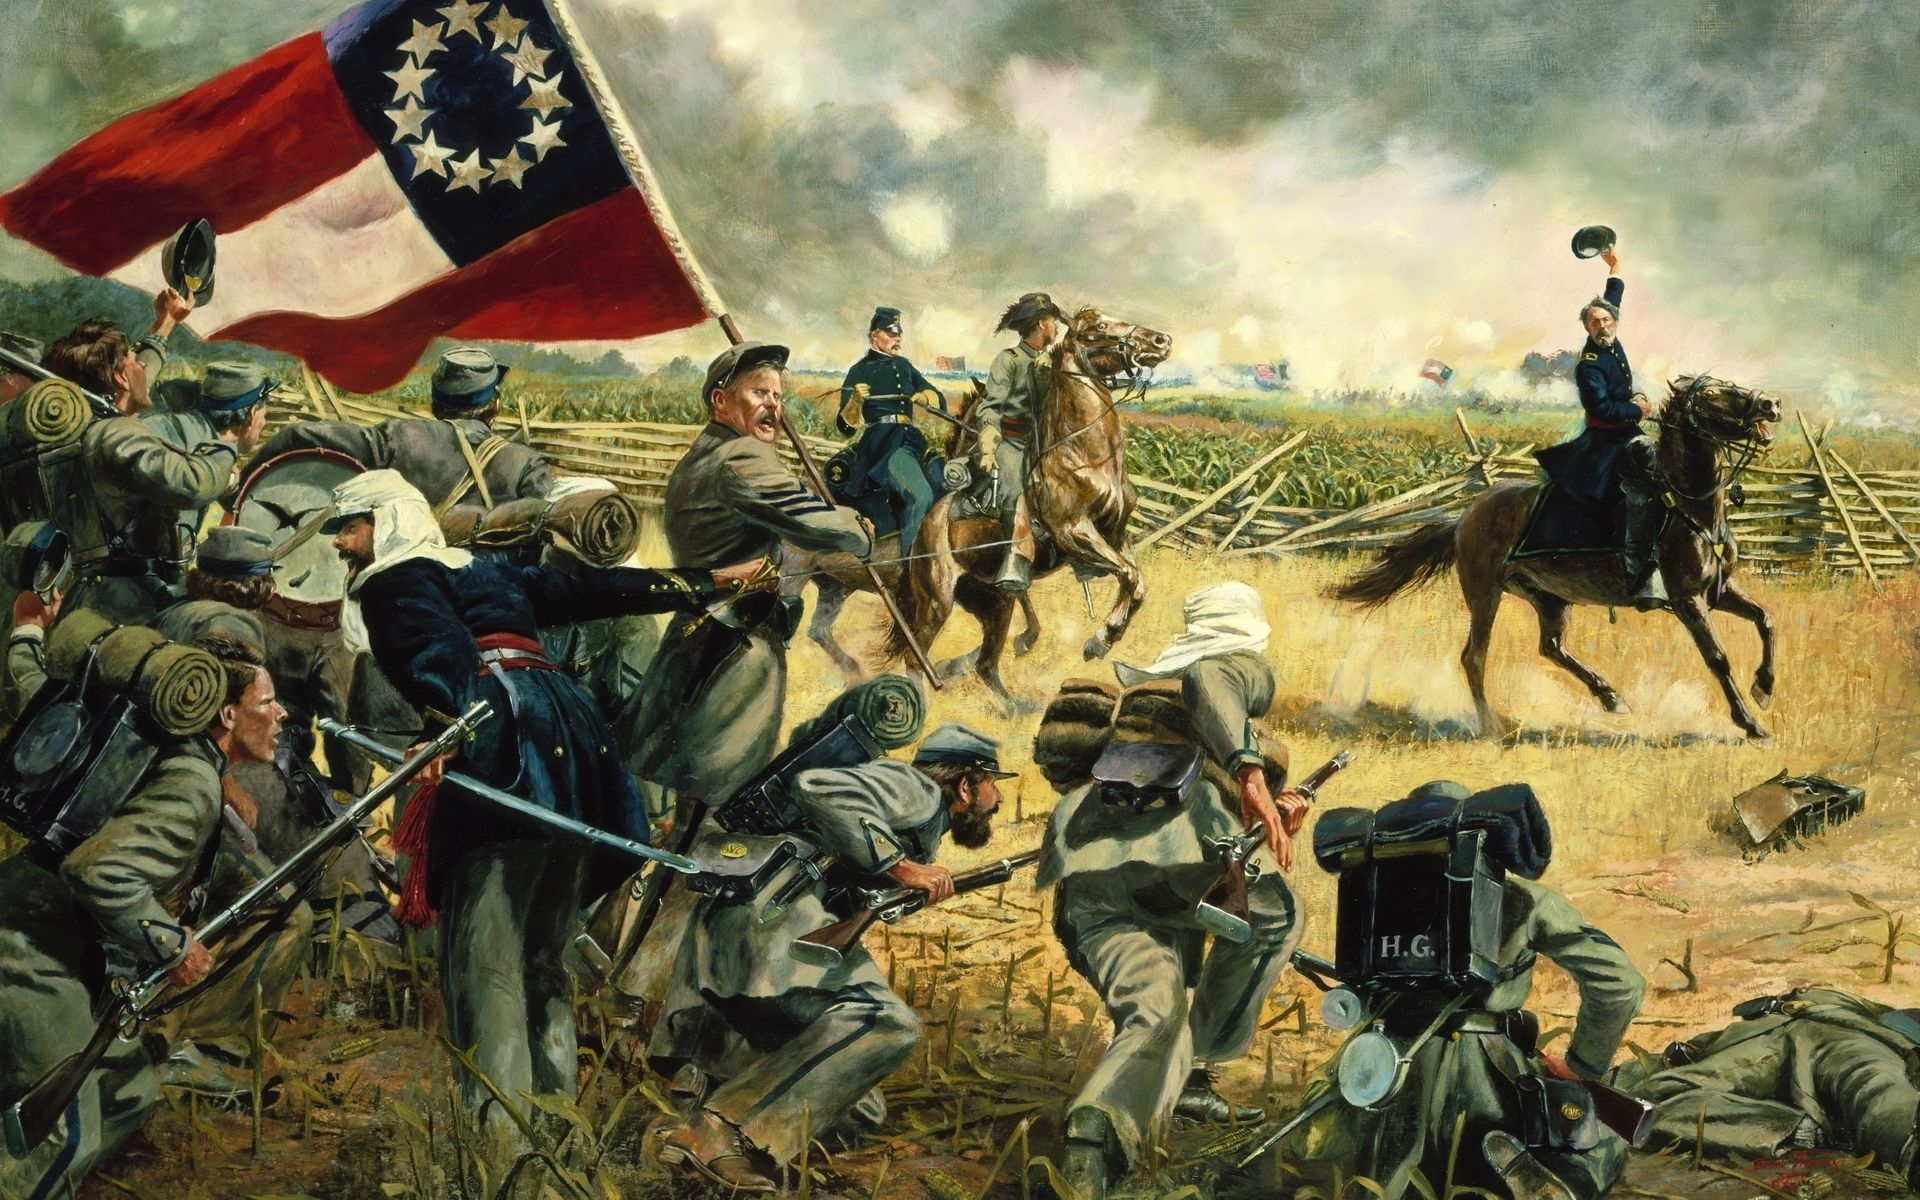 10 Latest American Civil War Wallpaper FULL HD 1080p For PC Background